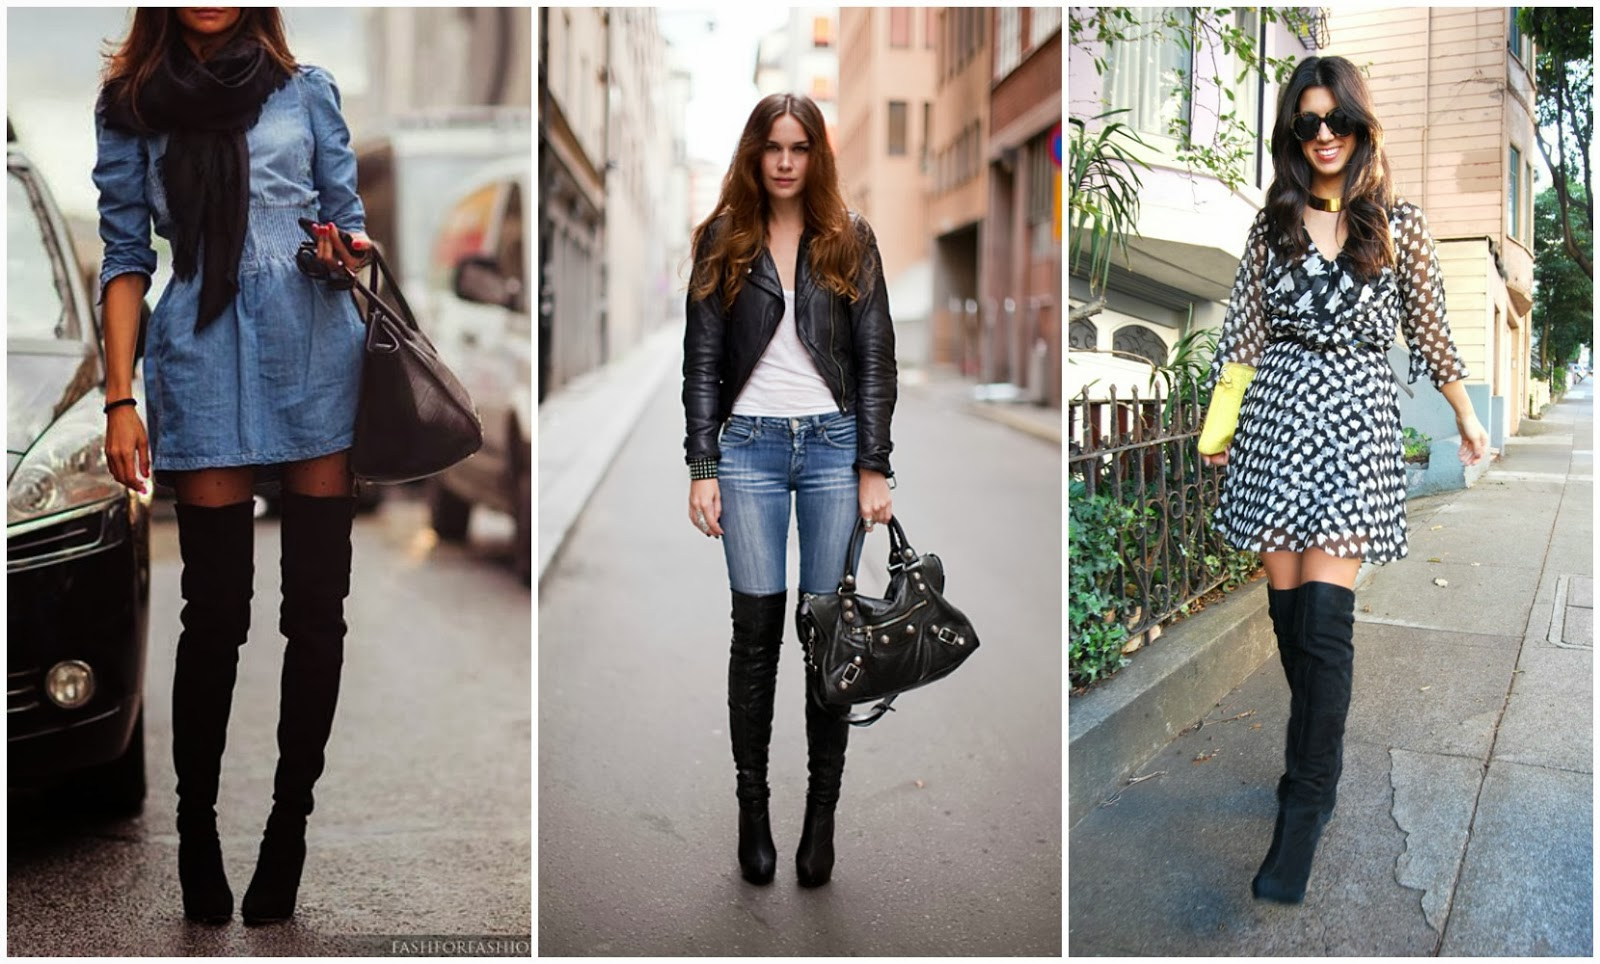 How to Wear Boots - Fashion Trends 74